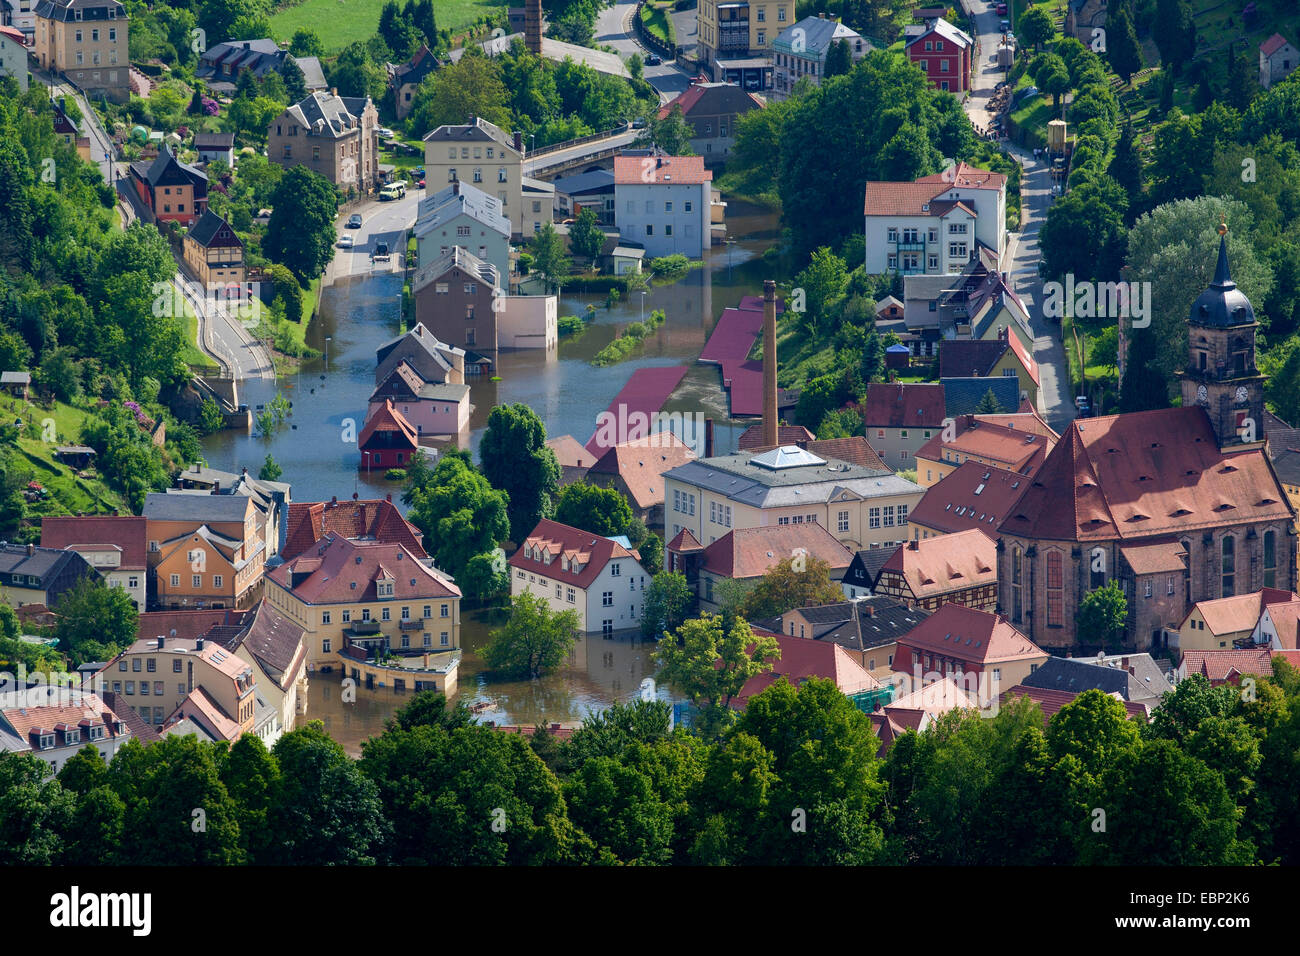 Elbe flood in summer 2013, view to flooded village, Germany, Saxony Stock Photo